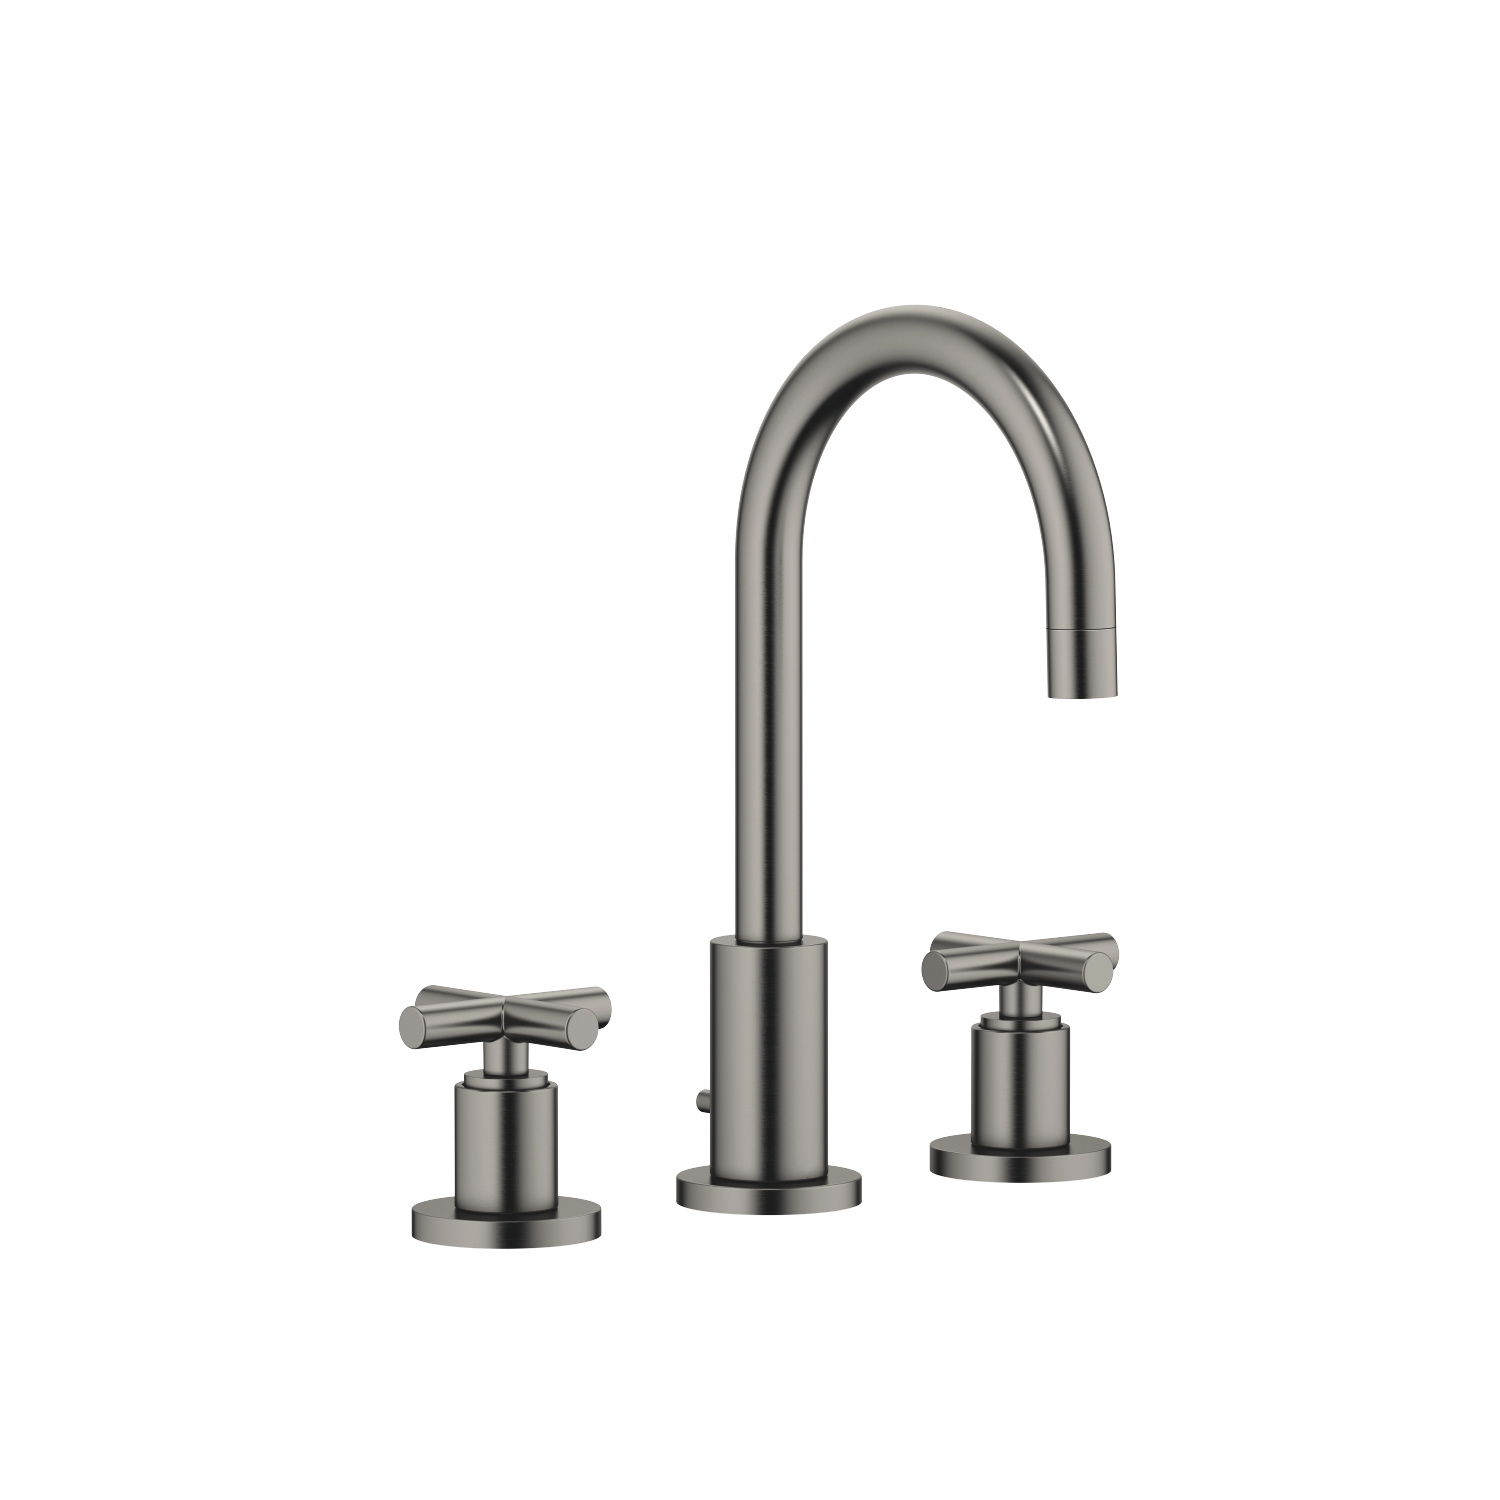 Three-hole basin mixer with pop-up waste - Dark Platinum matt